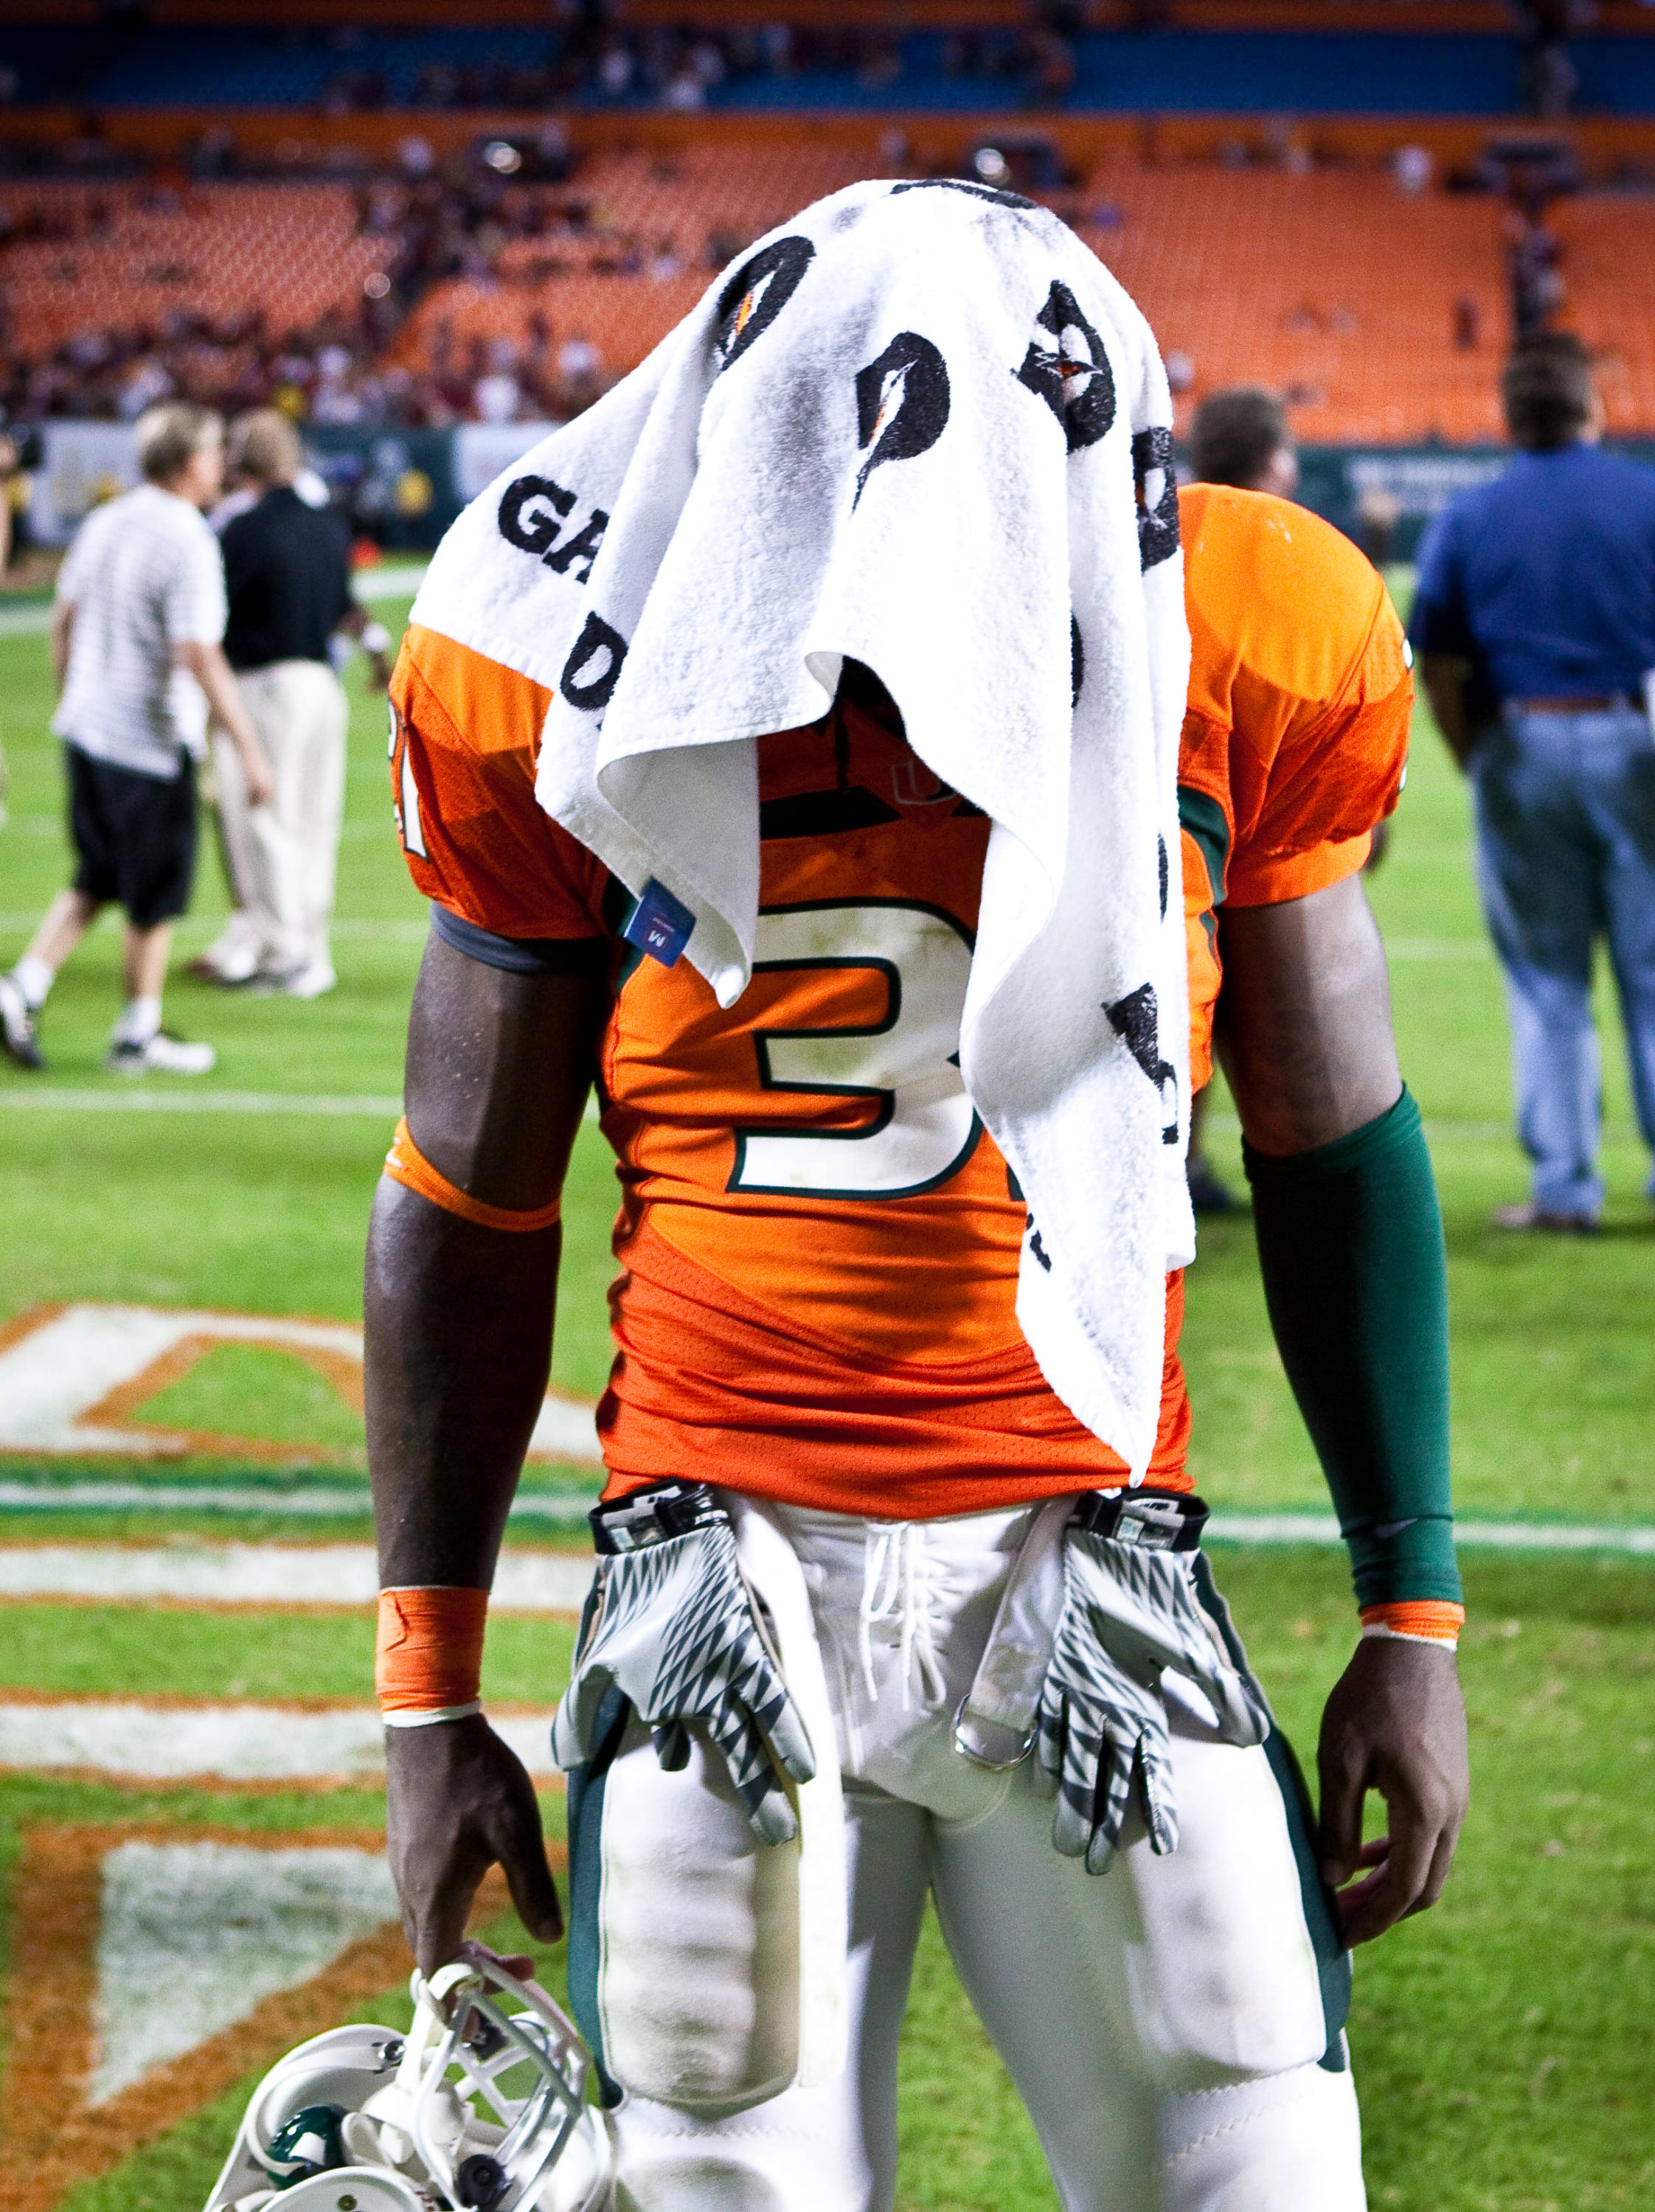 A Miami player is dejected after Florida State's win